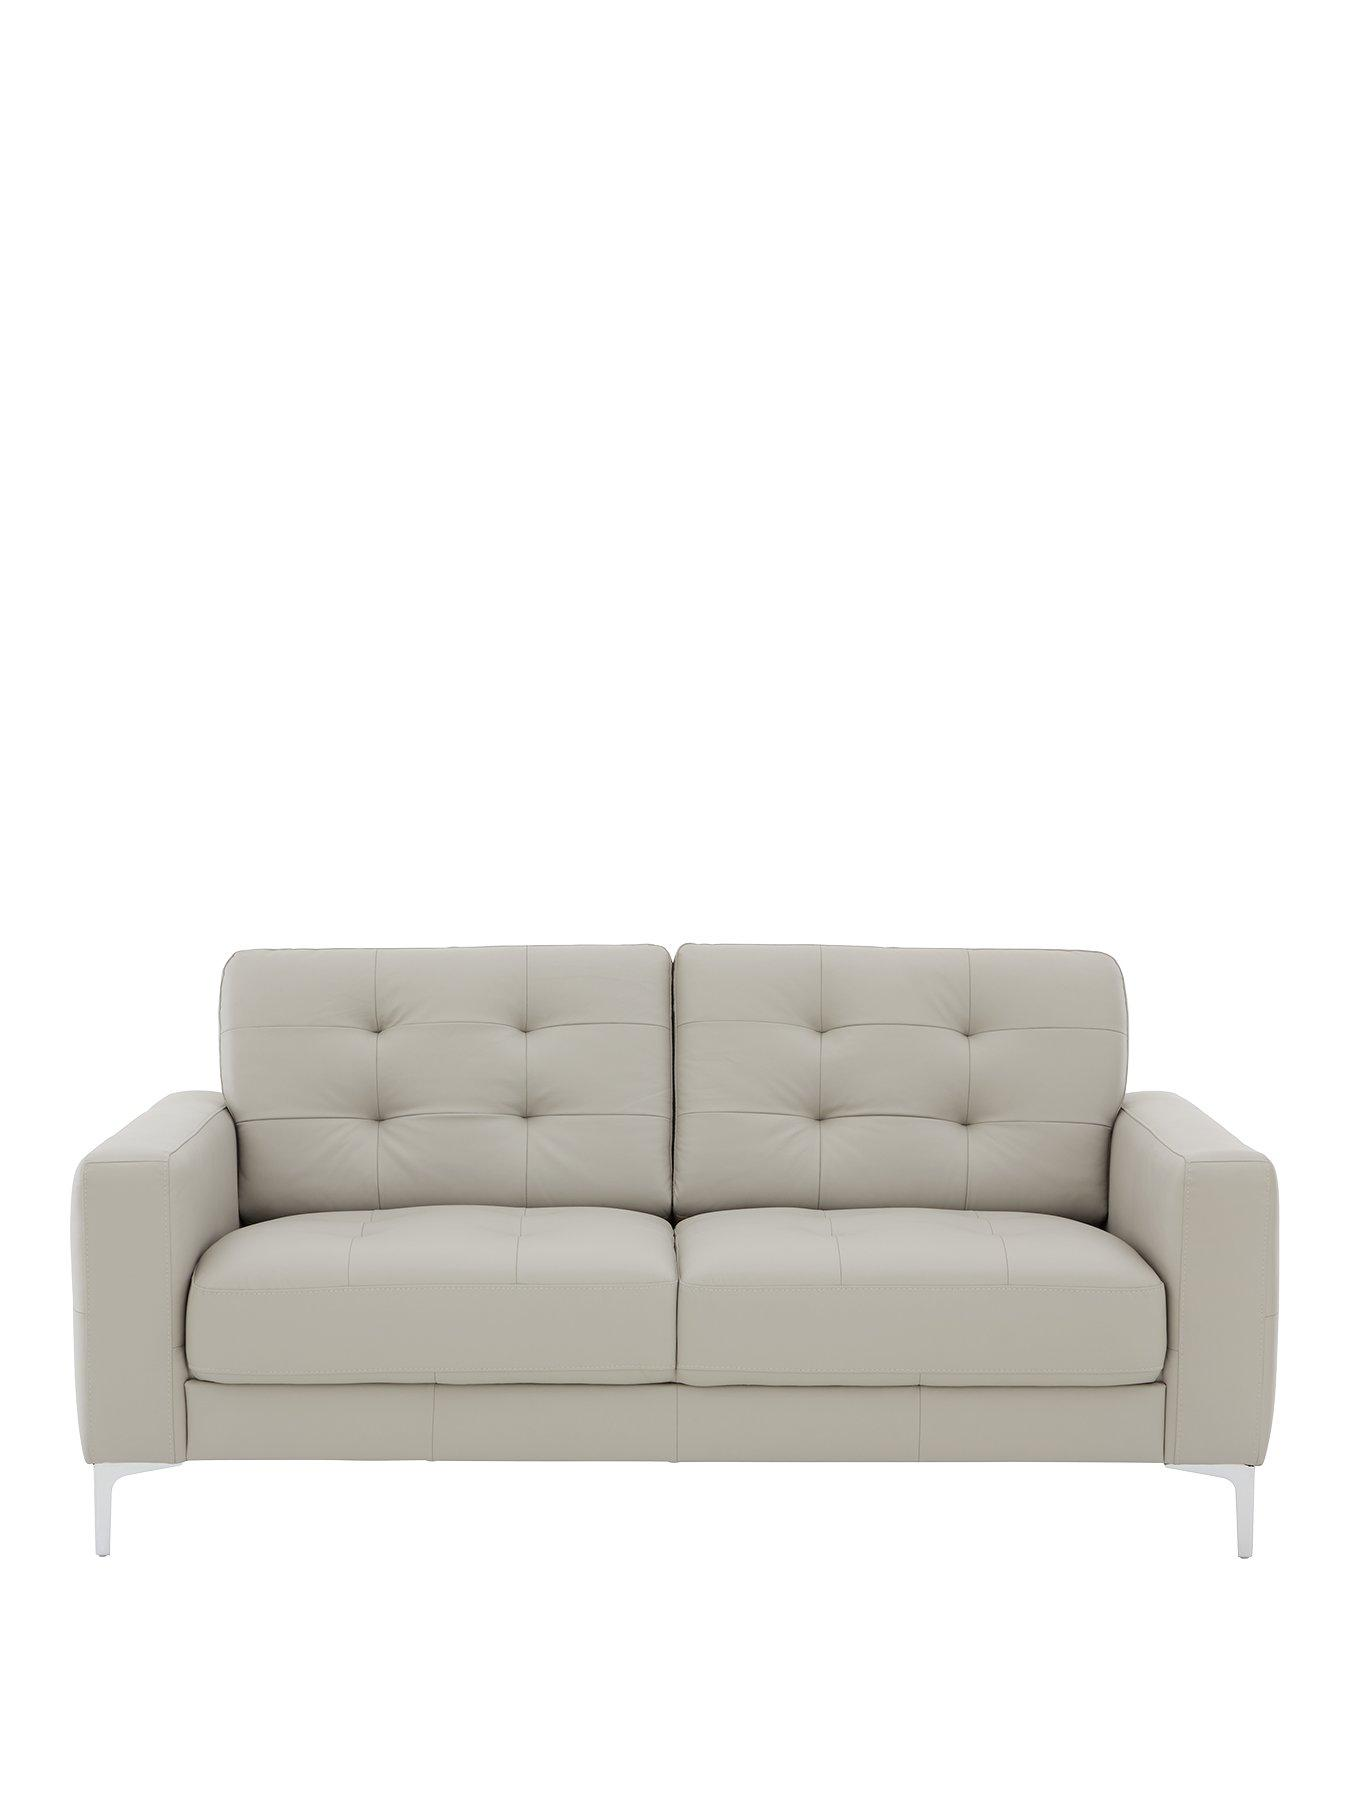 sofas quick delivery uk simple sofa set save on fast ideal home www very co brook 3 seater premium leather